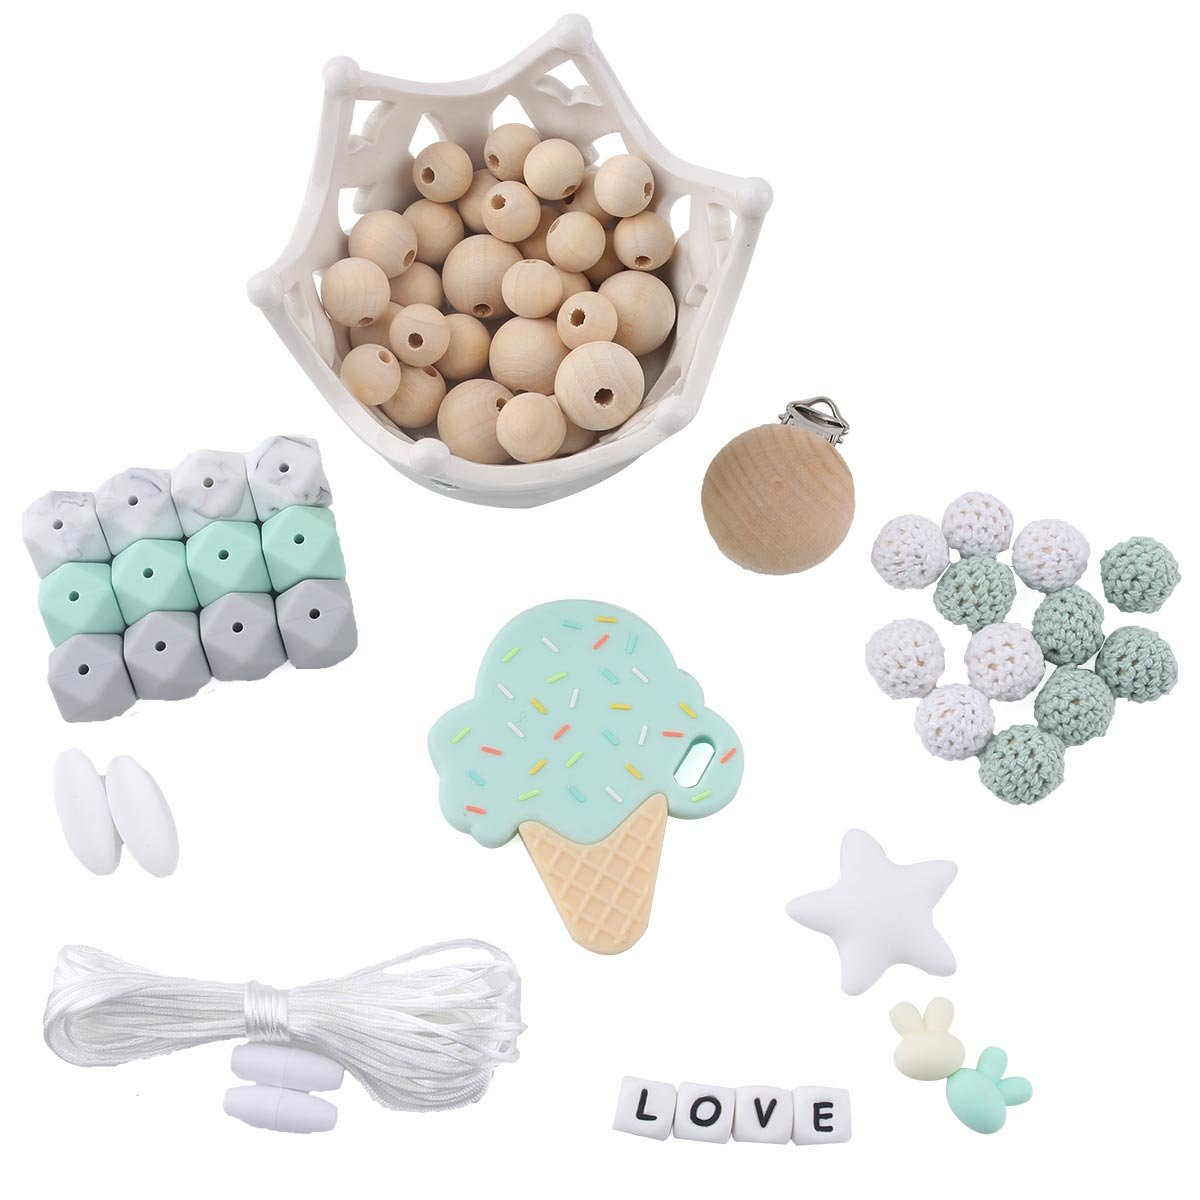 HAO JIE Baby Wooden Beads DIY Necklace Teether Baby Play Gym Teething Toys Storller Accessories Unfinished Octopus Wooden Toy Car Hanging